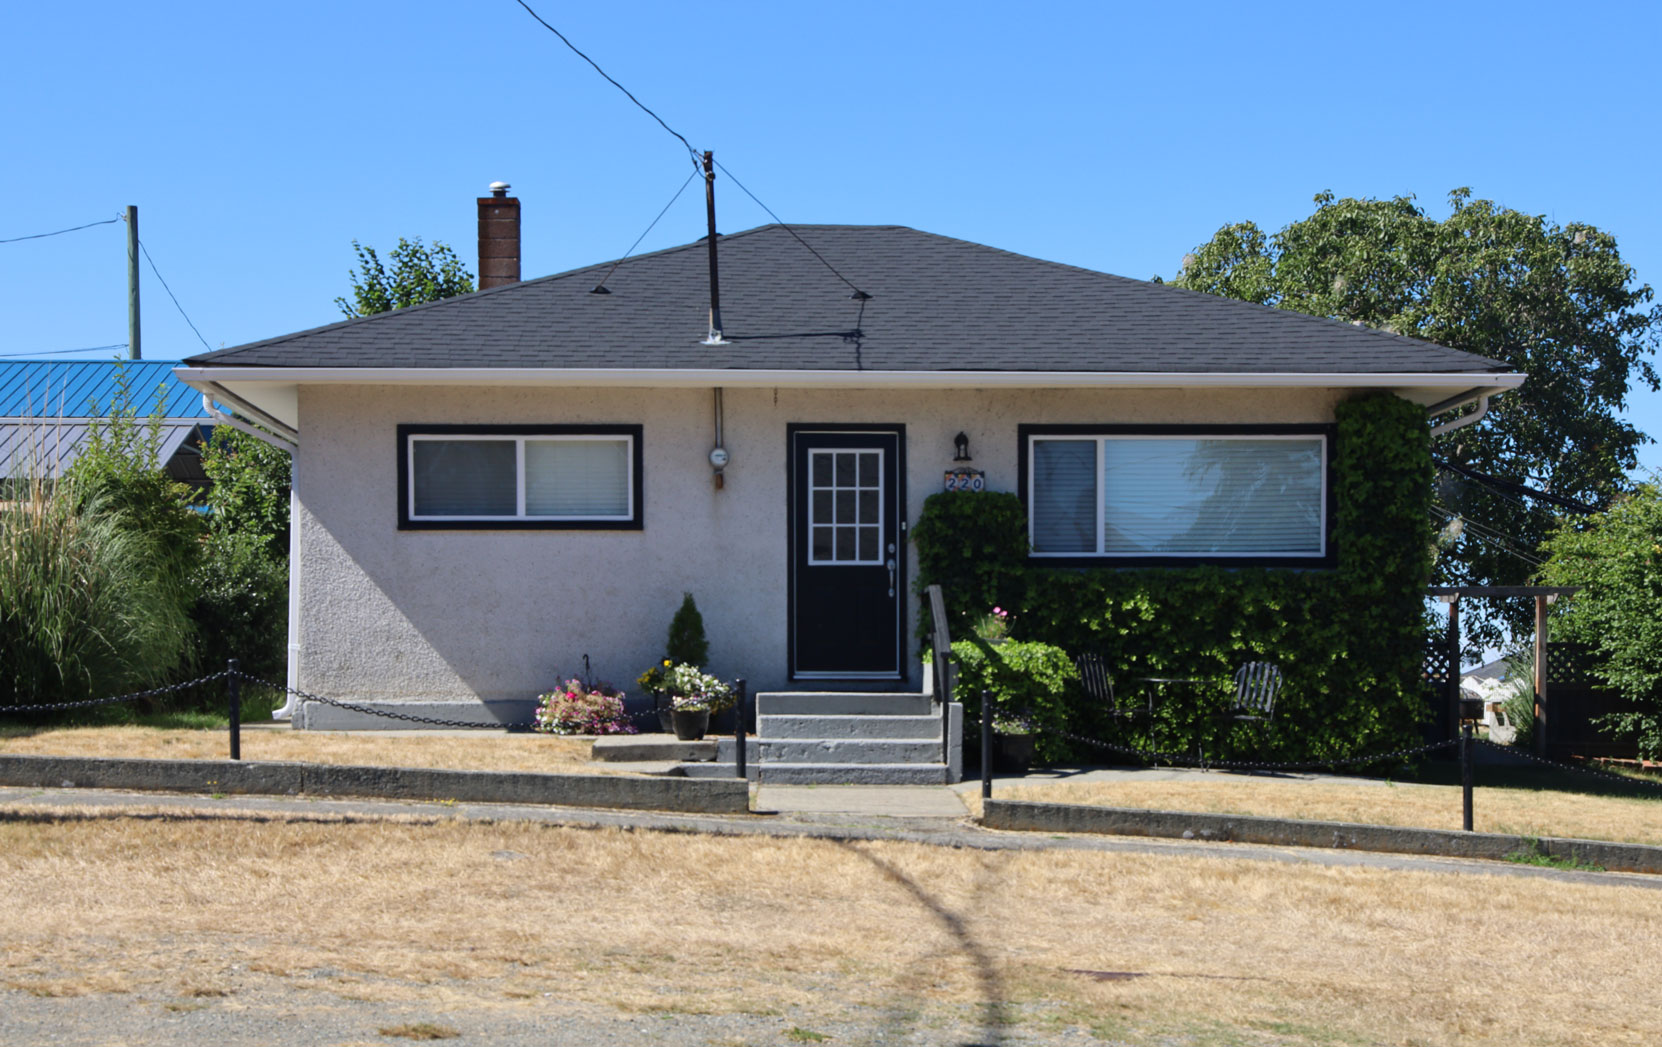 220 Roberts Street, built in 1955 (photo: Mark Anderson)